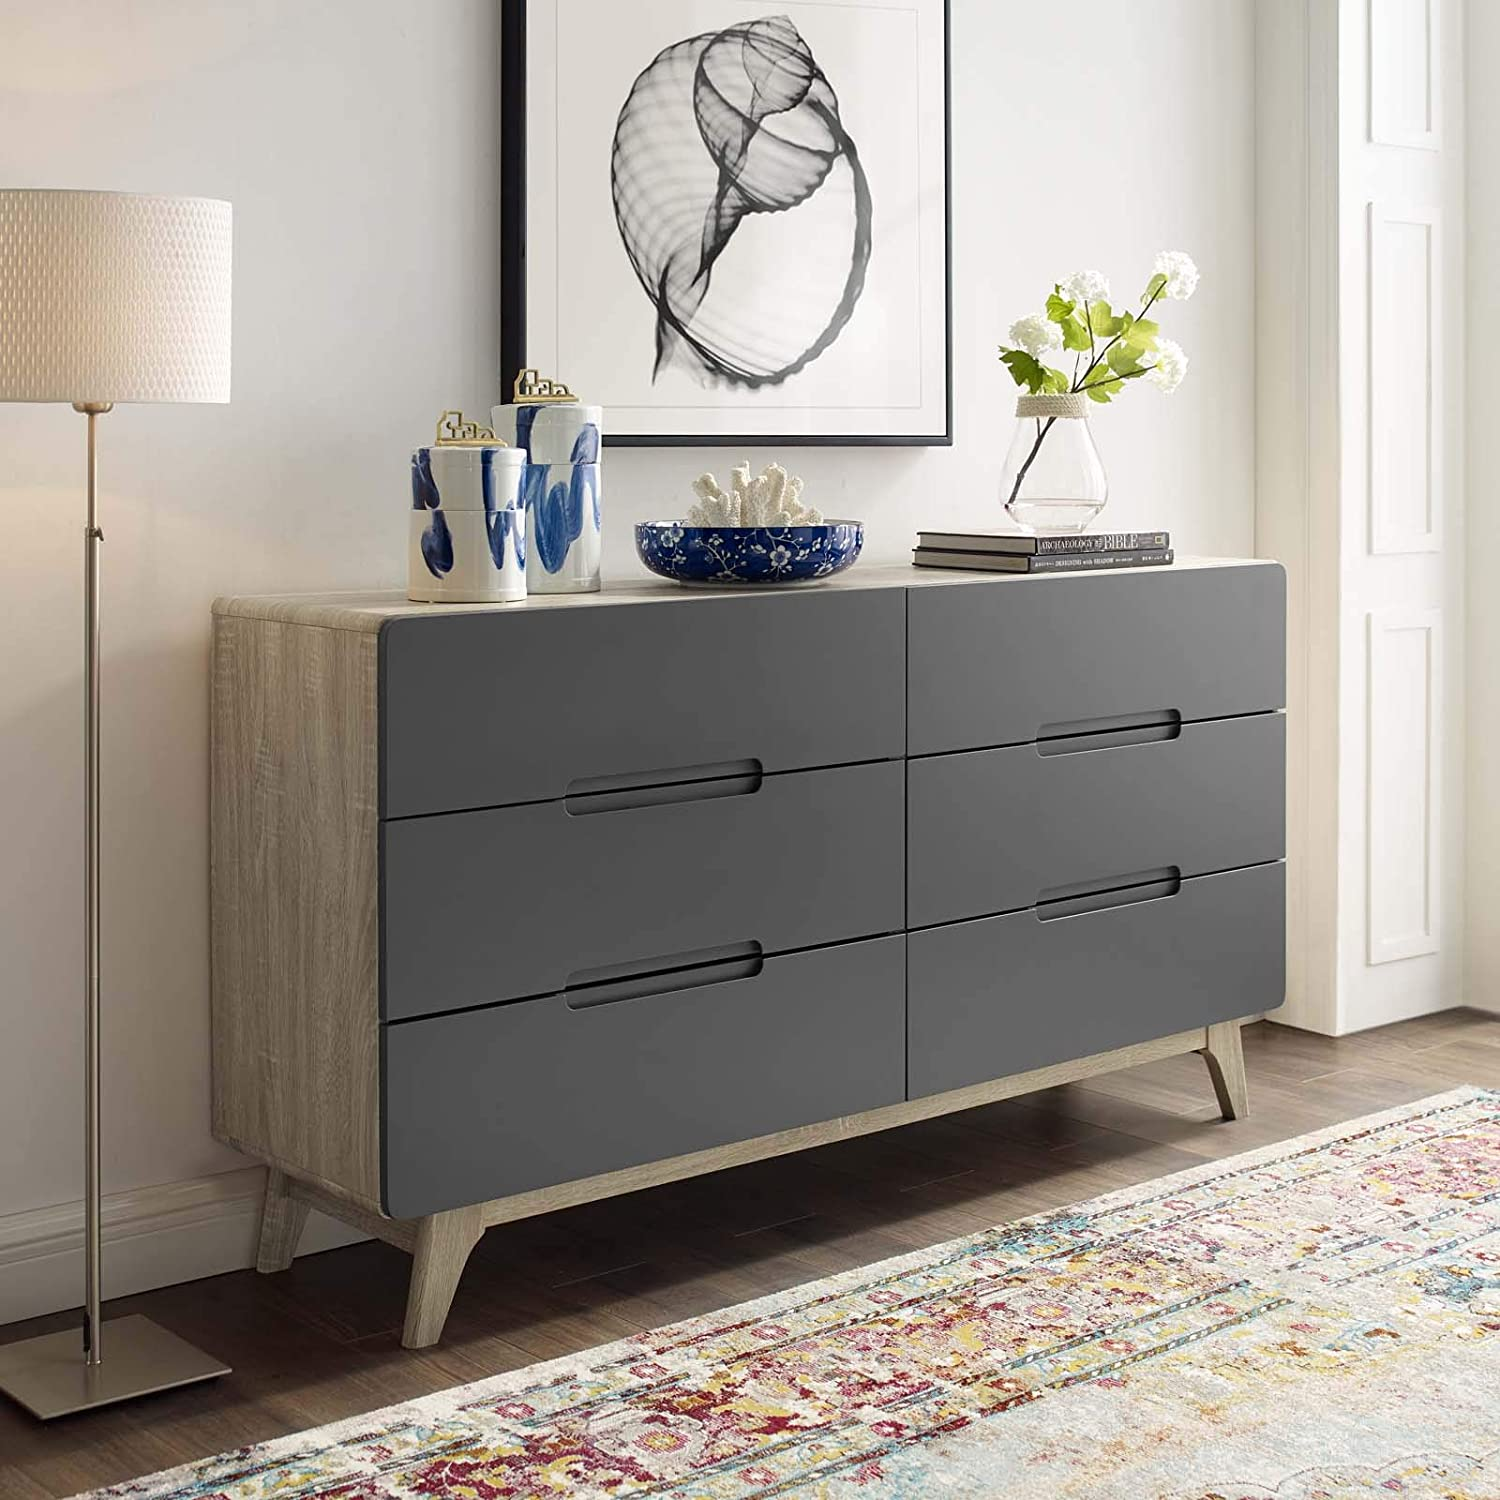 Modway Origin Contemporary Mid-Century Modern 5-Drawer Bedroom Dresser in  Natural Gray